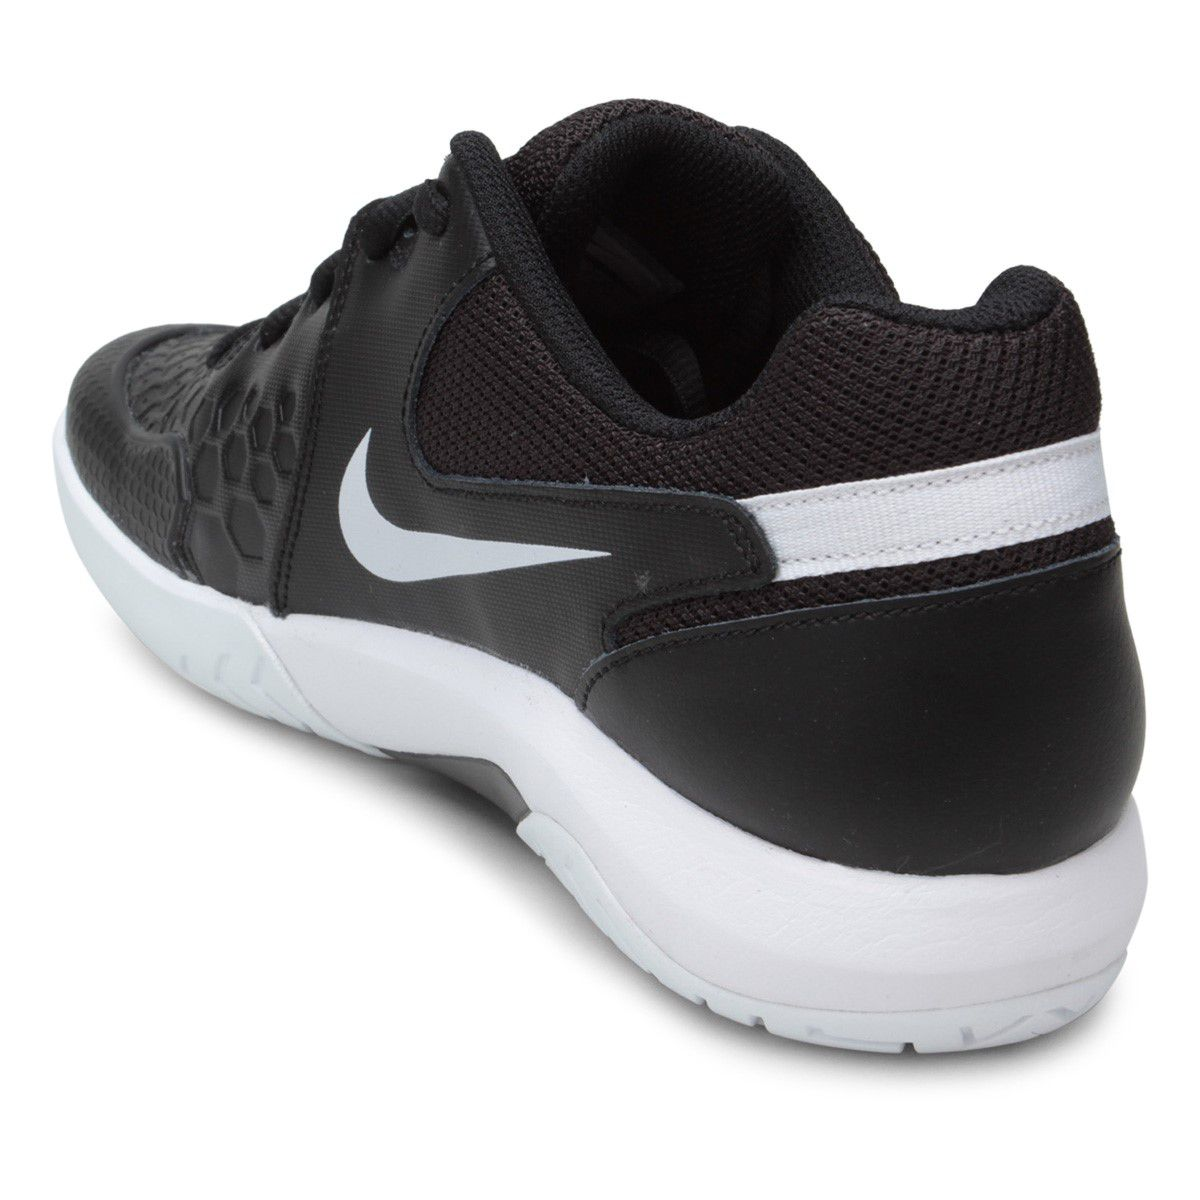 Tênis Nike Air Zoom Resistance Masculino